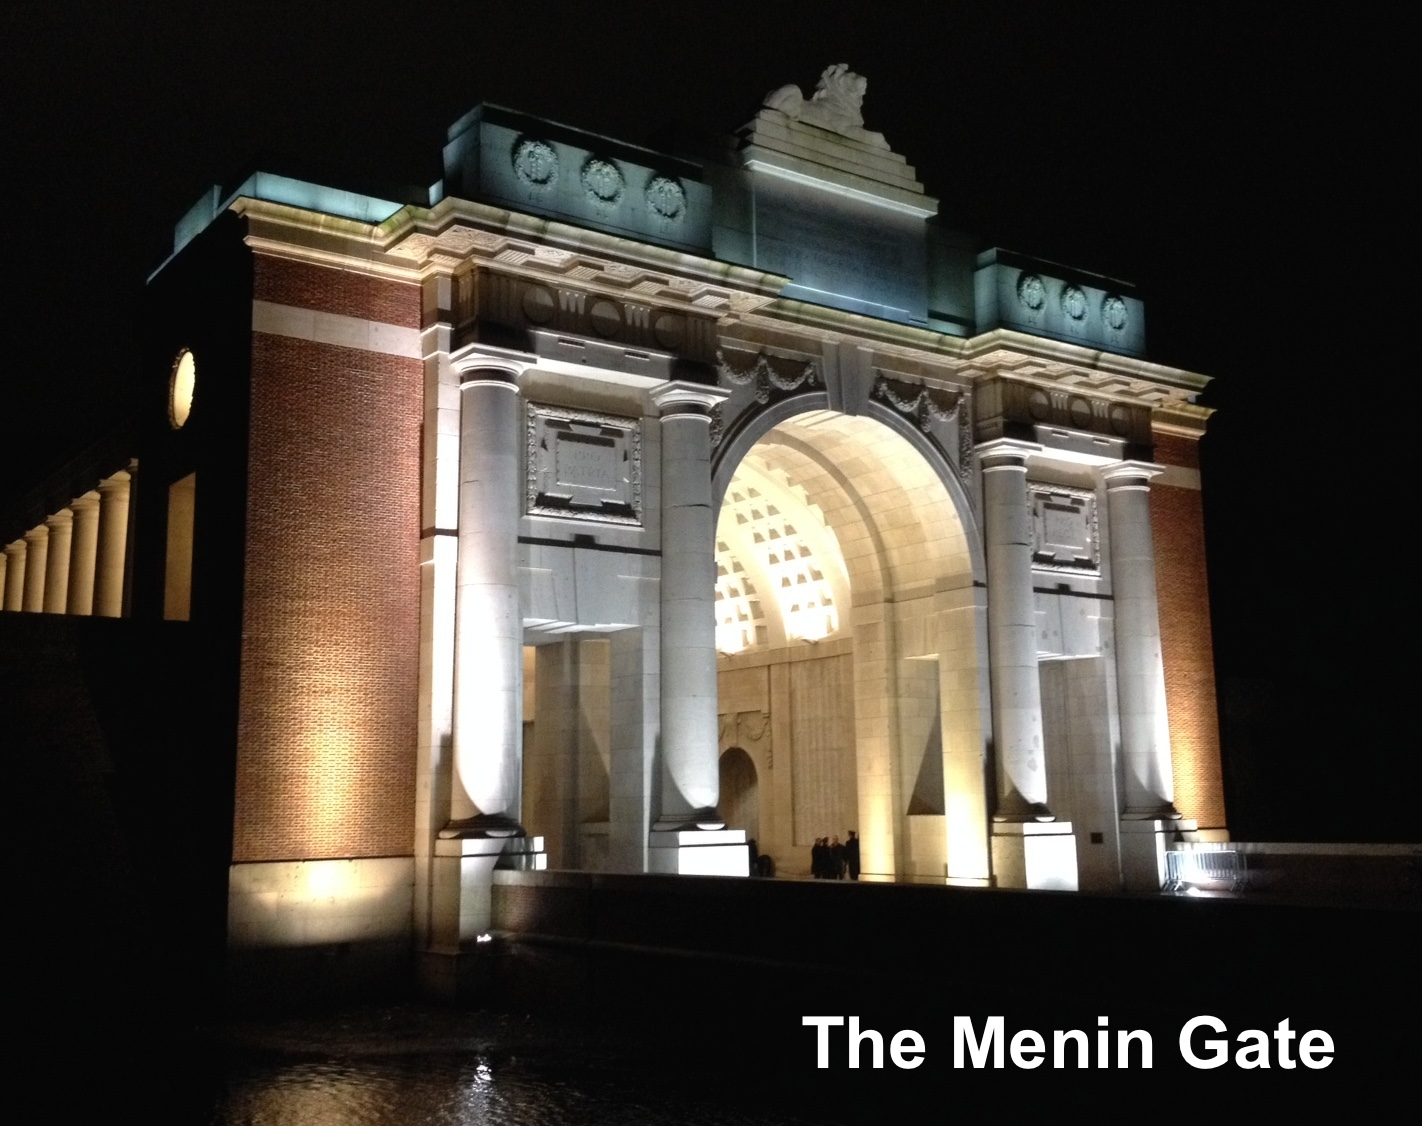 The Menin Gate, the Memorial to the Missing of the Ypres Salient